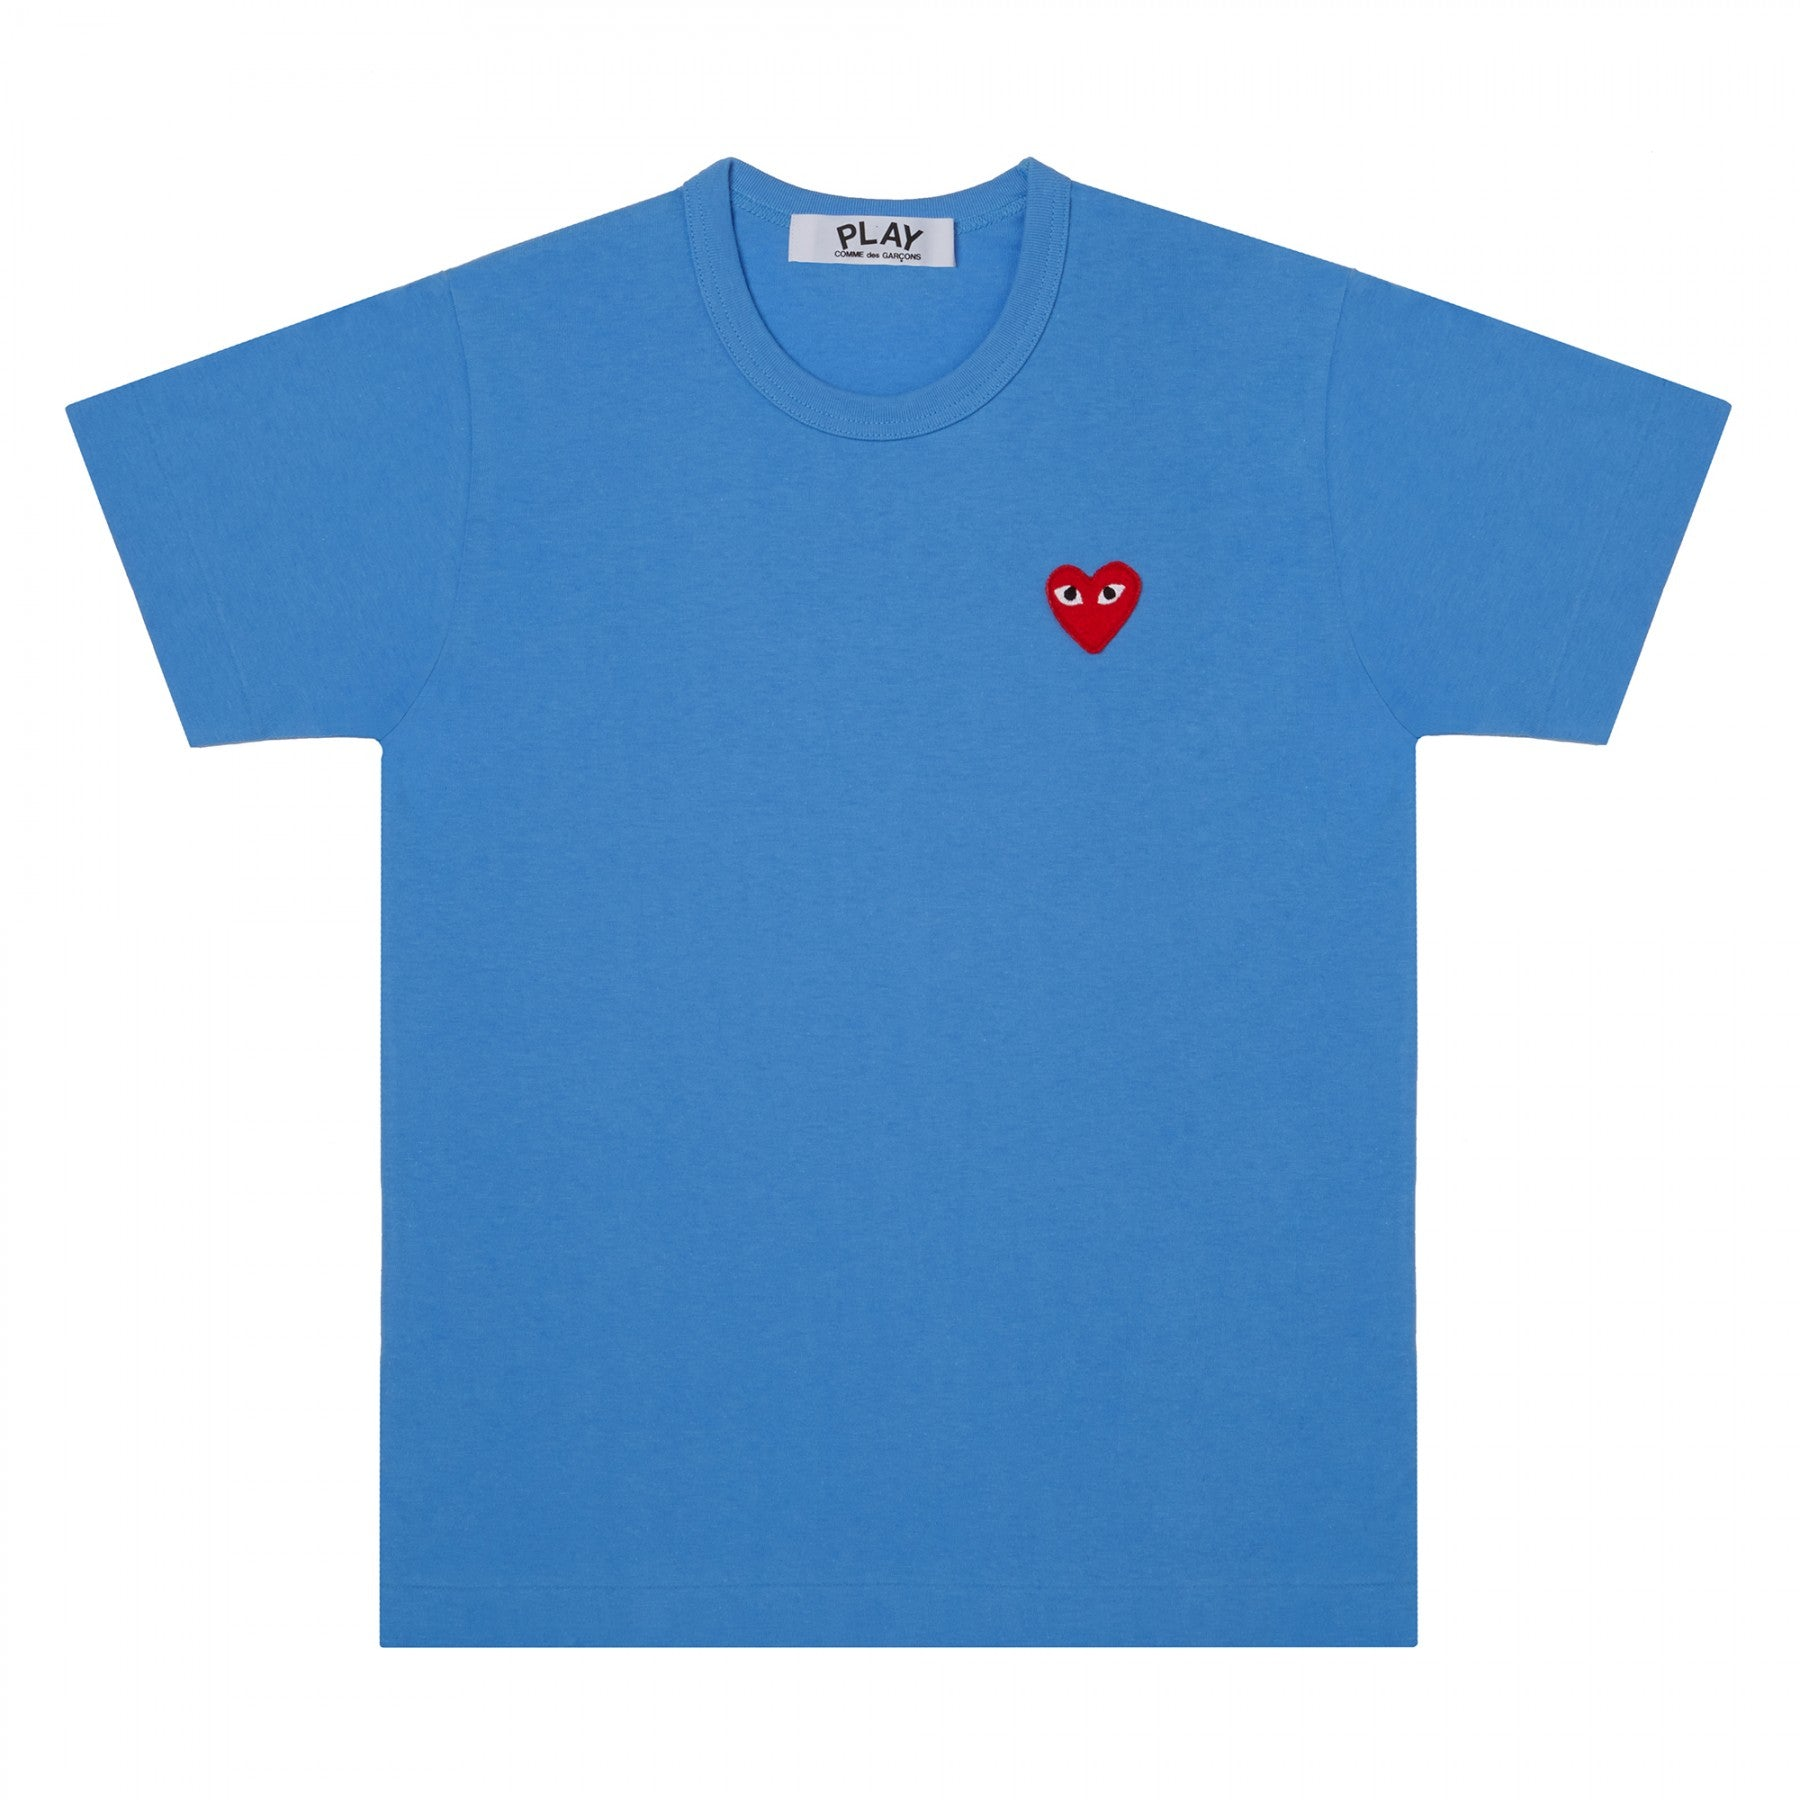 COMME DES GARCONS - PLAY T- SHIRT RED HEART (BLUE) MENS